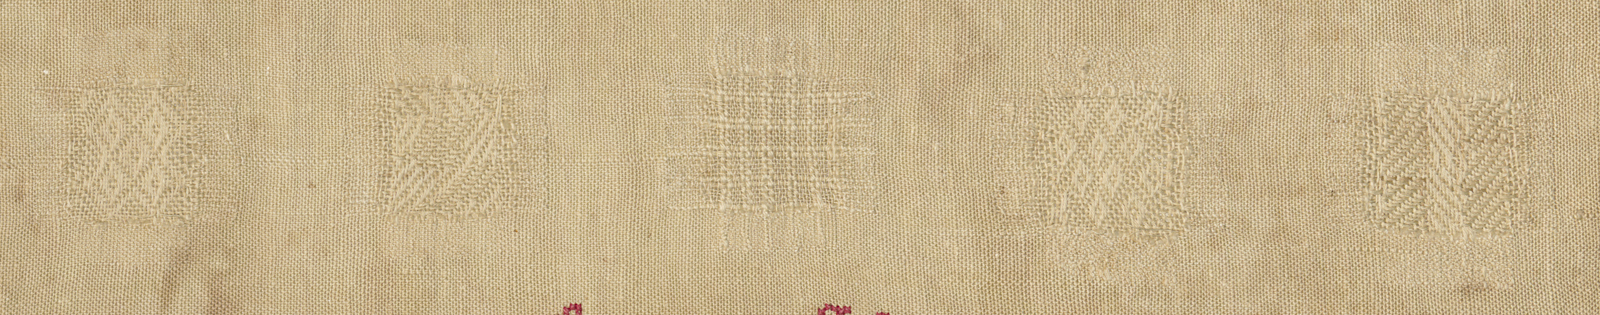 Detail of row of white stitches in the darning sampler.